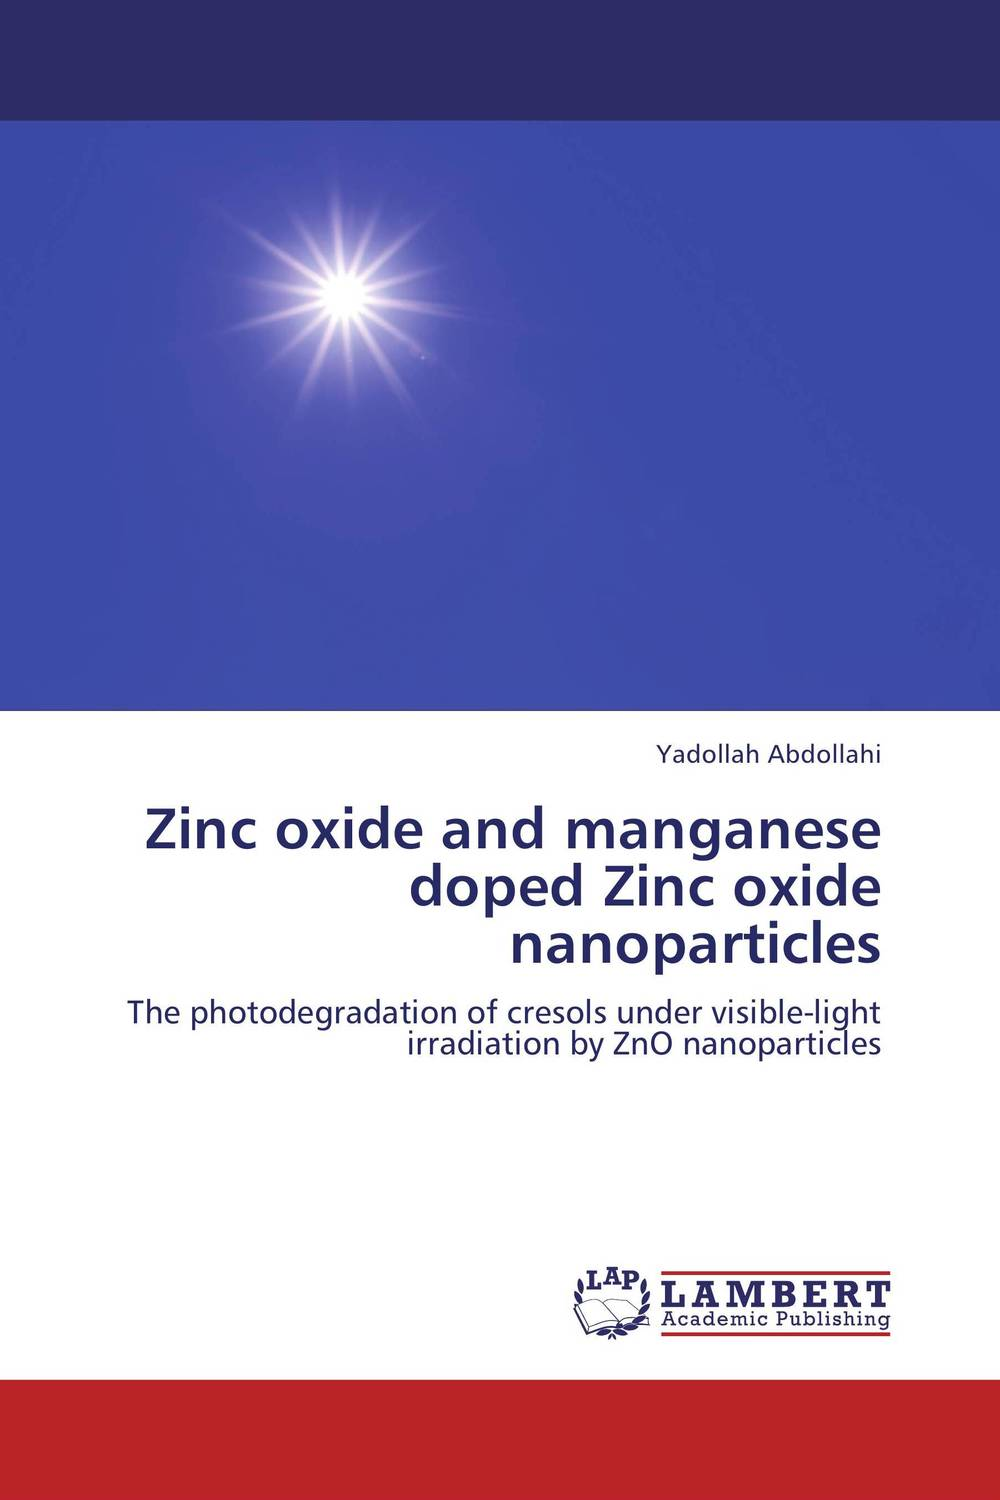 Zinc oxide and manganese doped Zinc oxide nanoparticles carbohydrate doped mgb2 superconductor for magnet application